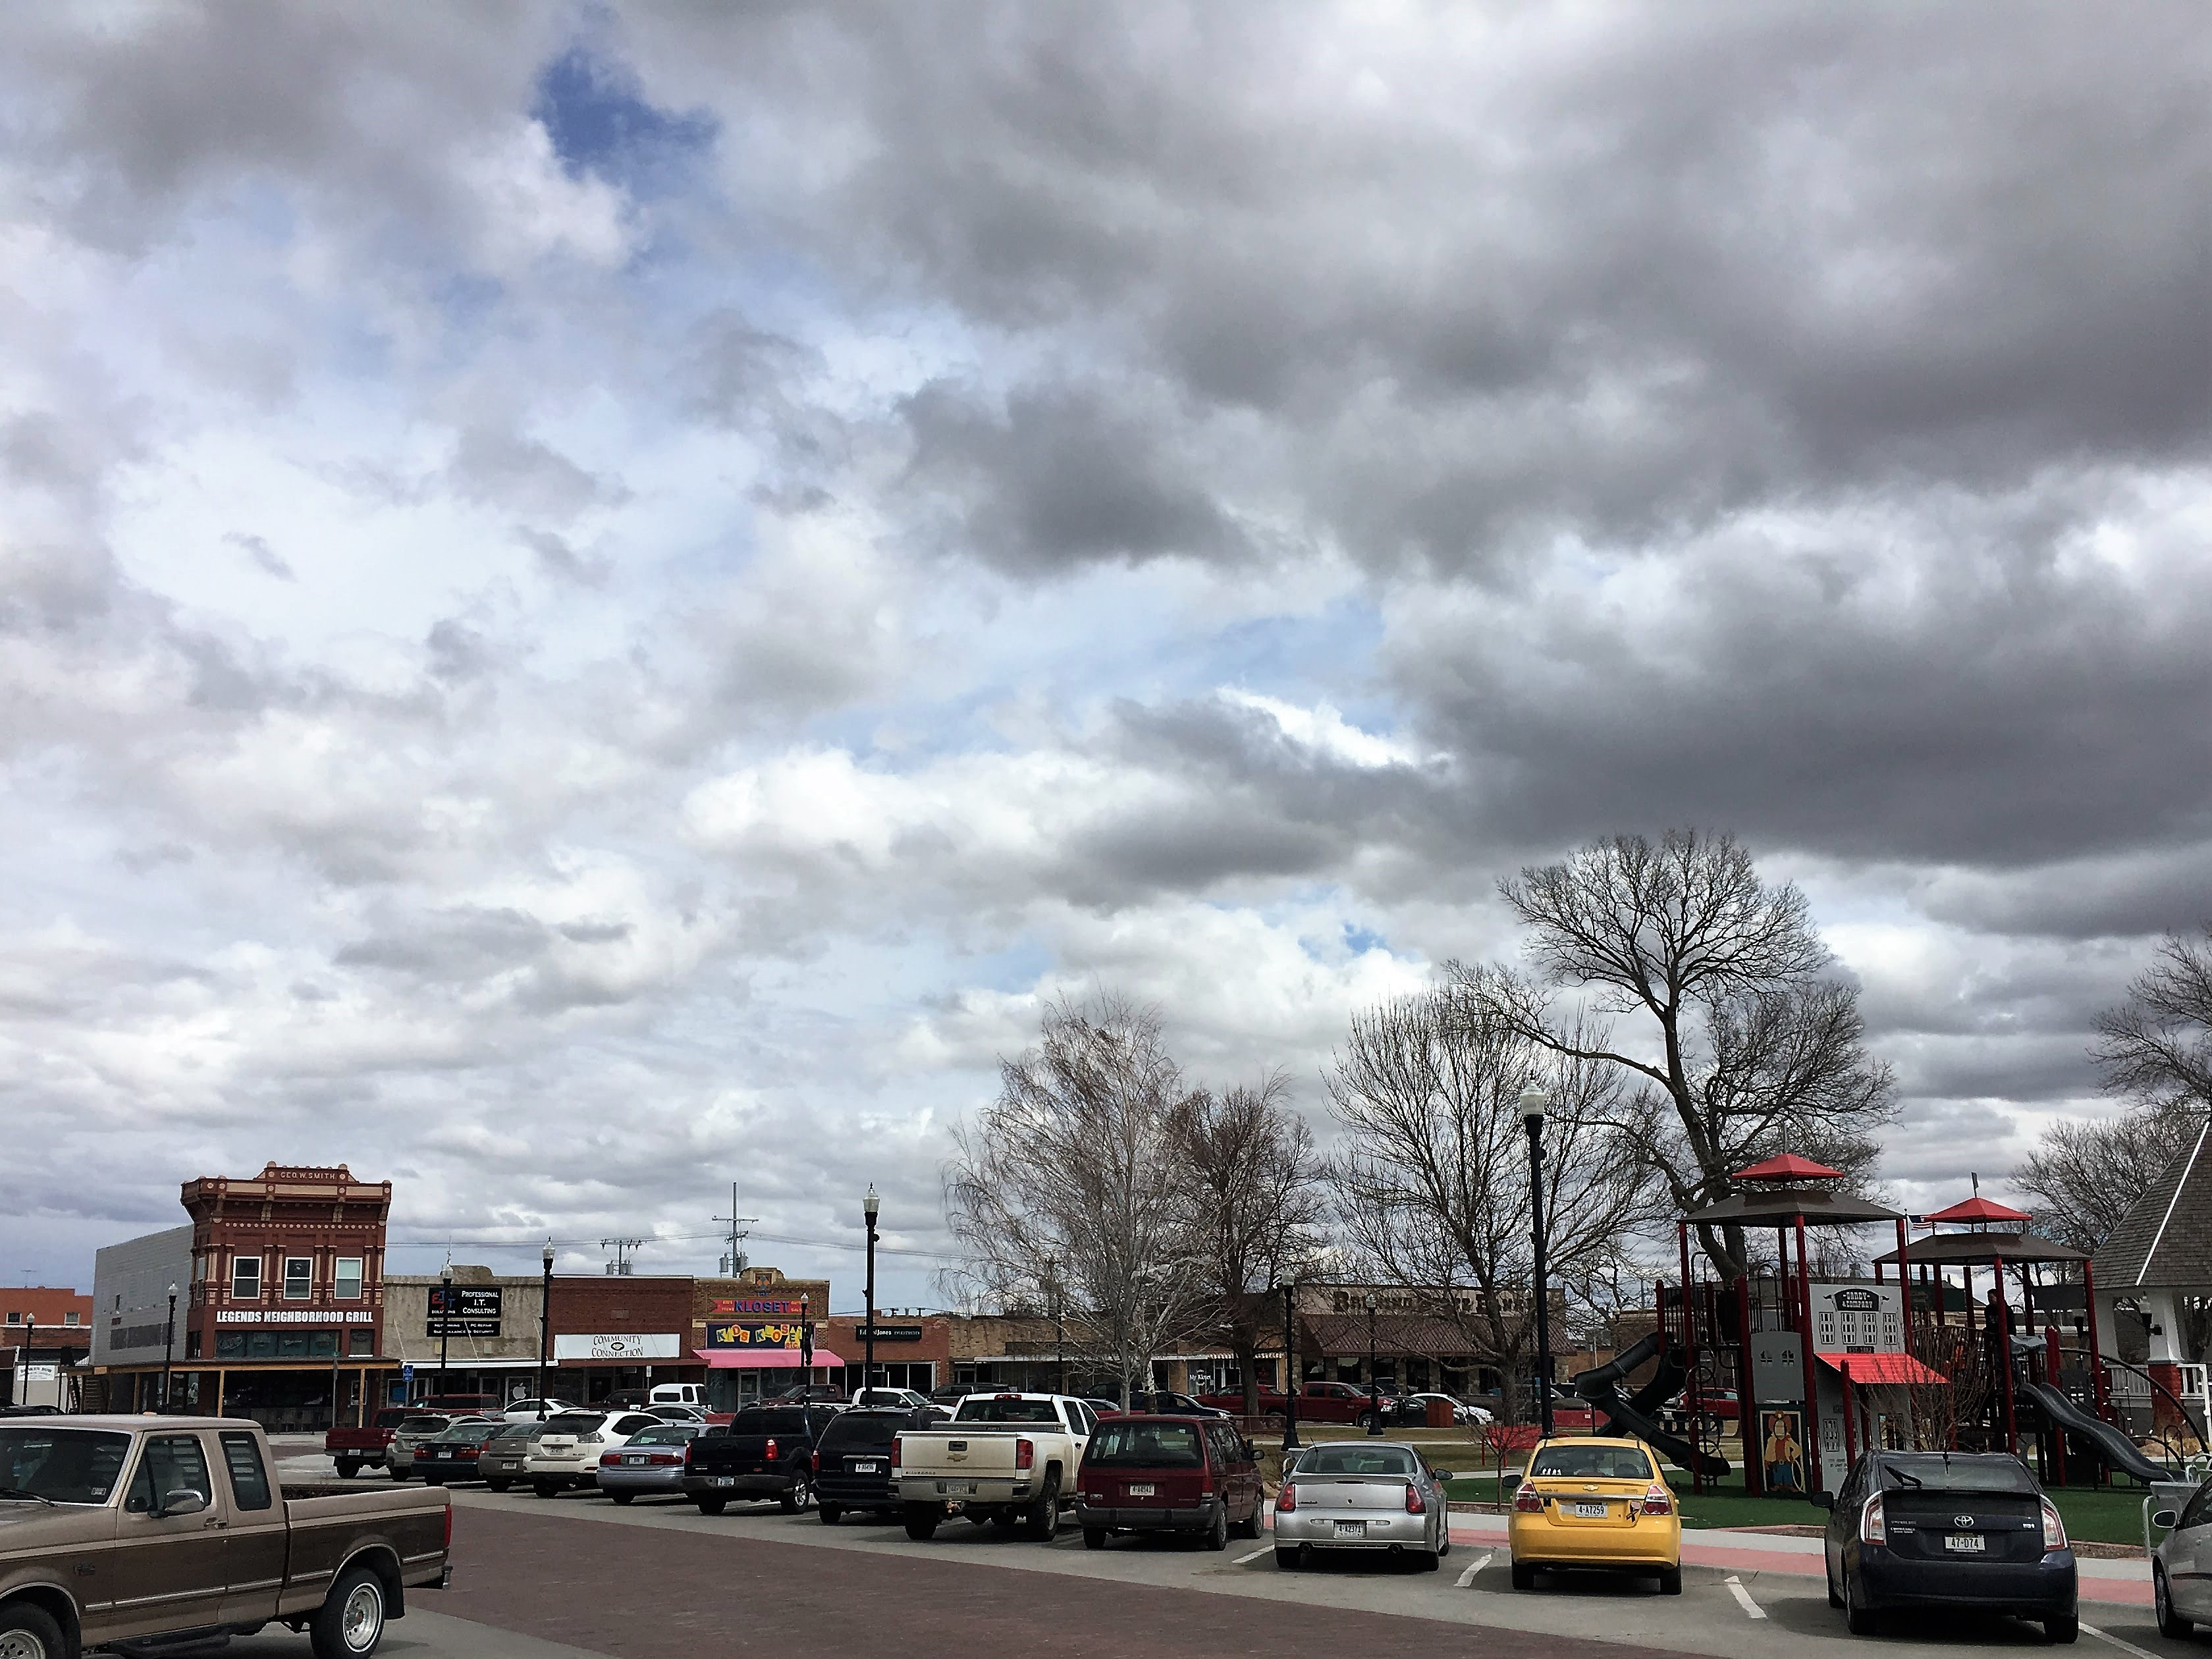 A sky full of clouds over top of a small town Main Street with cars and quaint buildings.